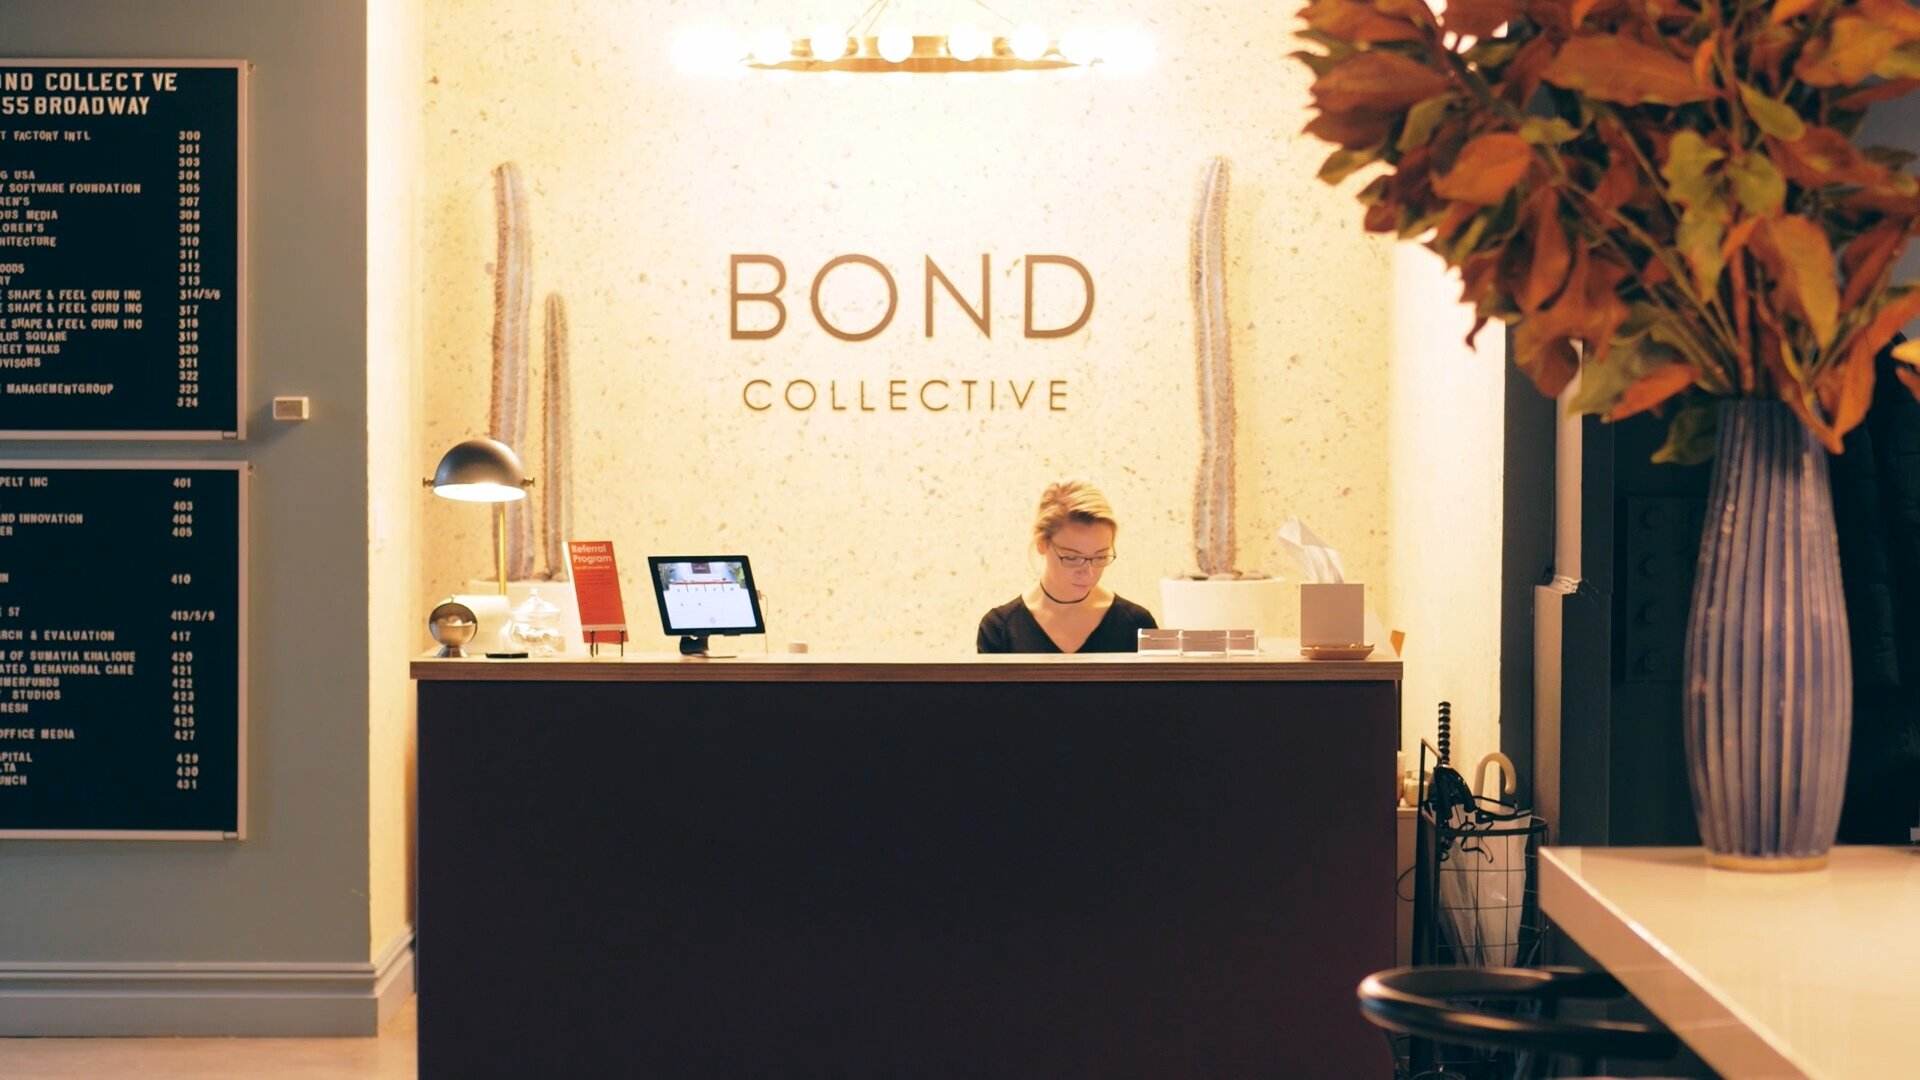 Receptionist at Bond Collective hybrid workplace